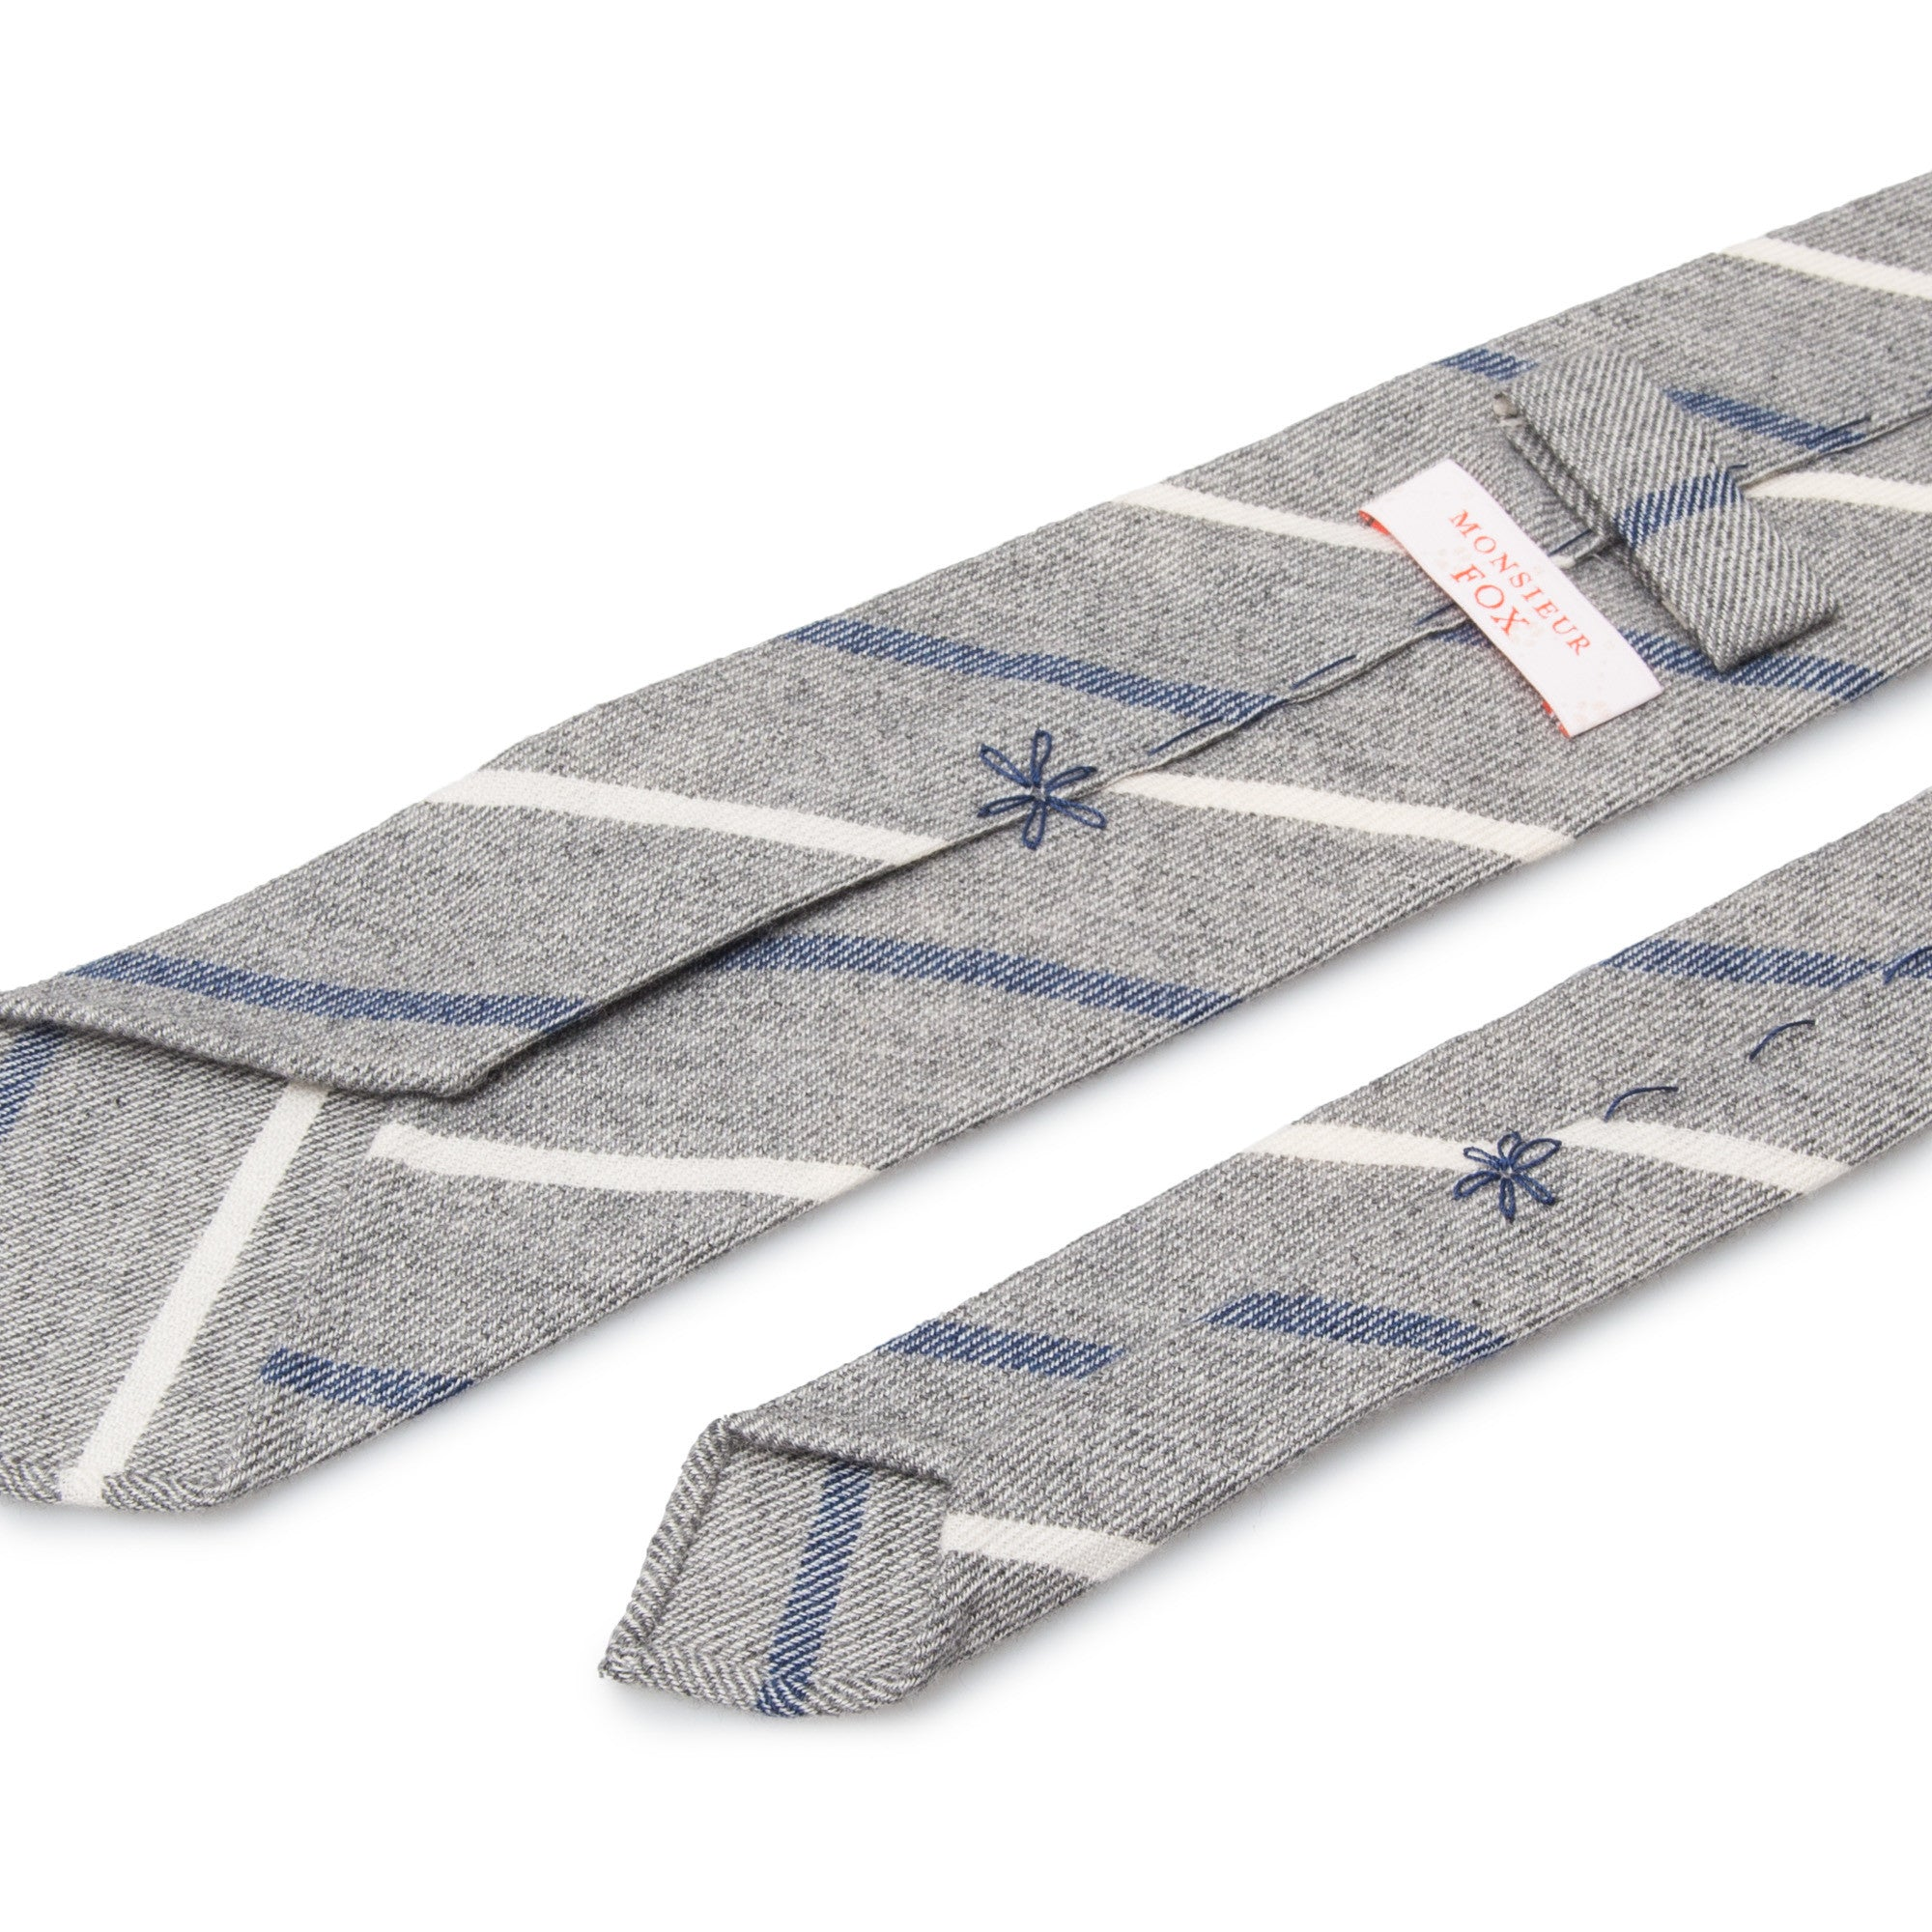 Striped Cashmere Tie - White and Blue on Light Grey